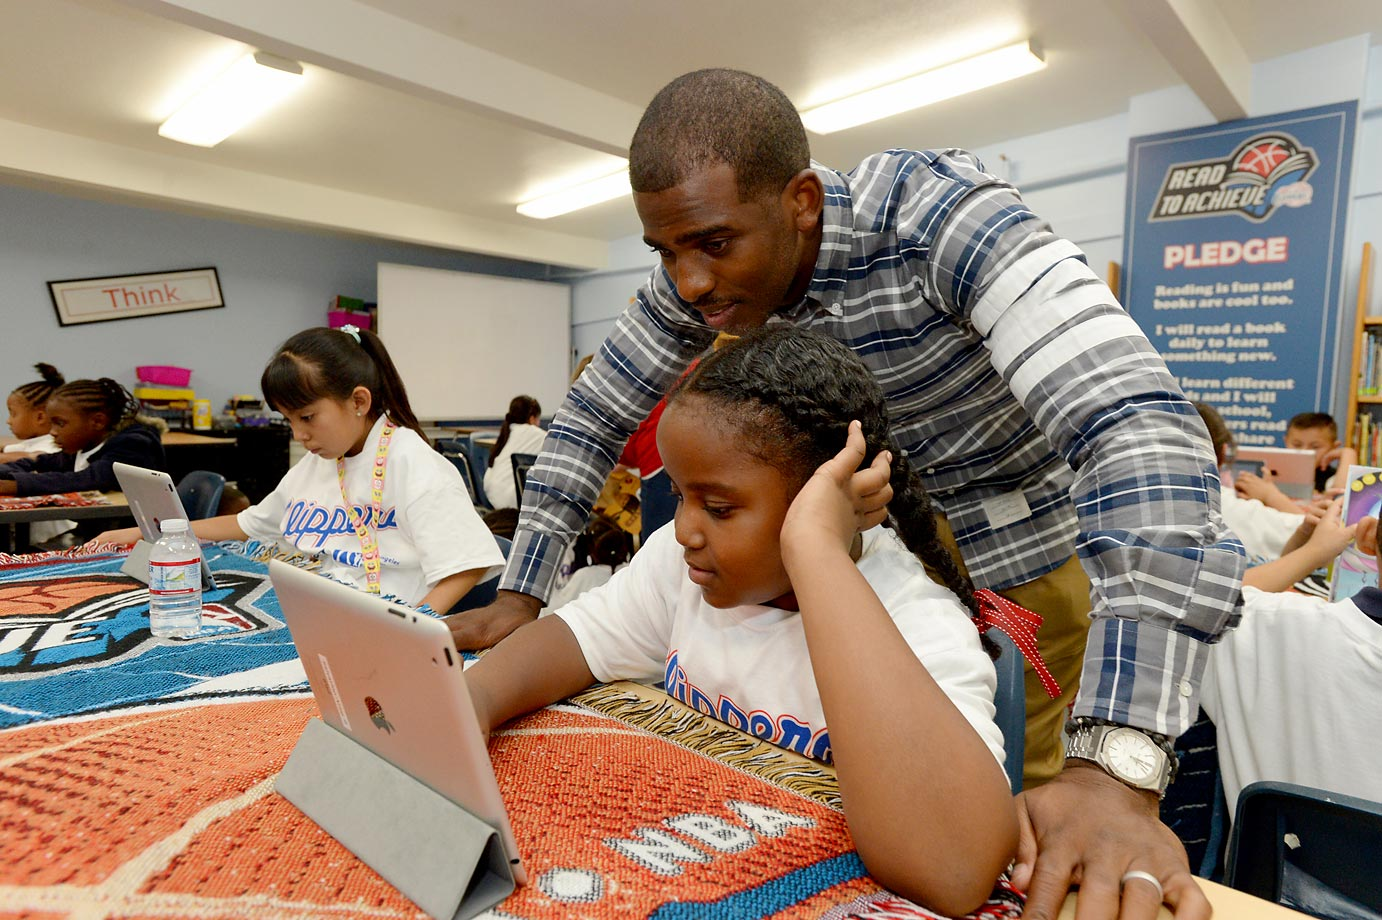 Chris Paul of the Los Angeles Clippers works with a child at the Salvation Army Seimon Family Youth and Community Center before unveiling a renovation of the Read To Achieve Learn and Play Center by the Los Angeles Clippers Foundation and the CP3 Foundation.